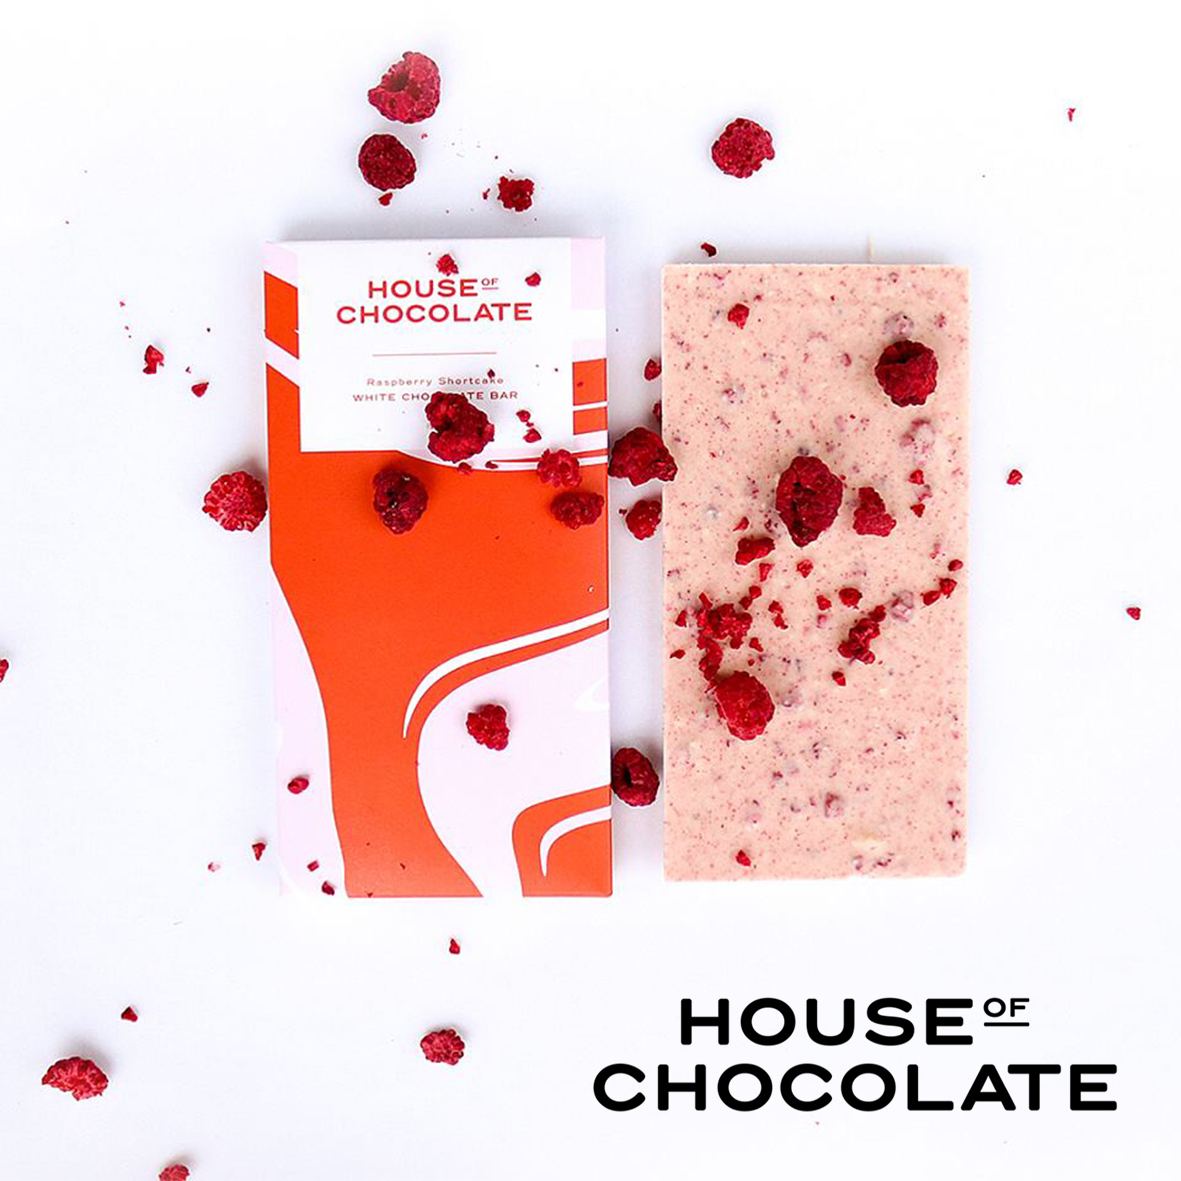 House of Chocolate.jpg